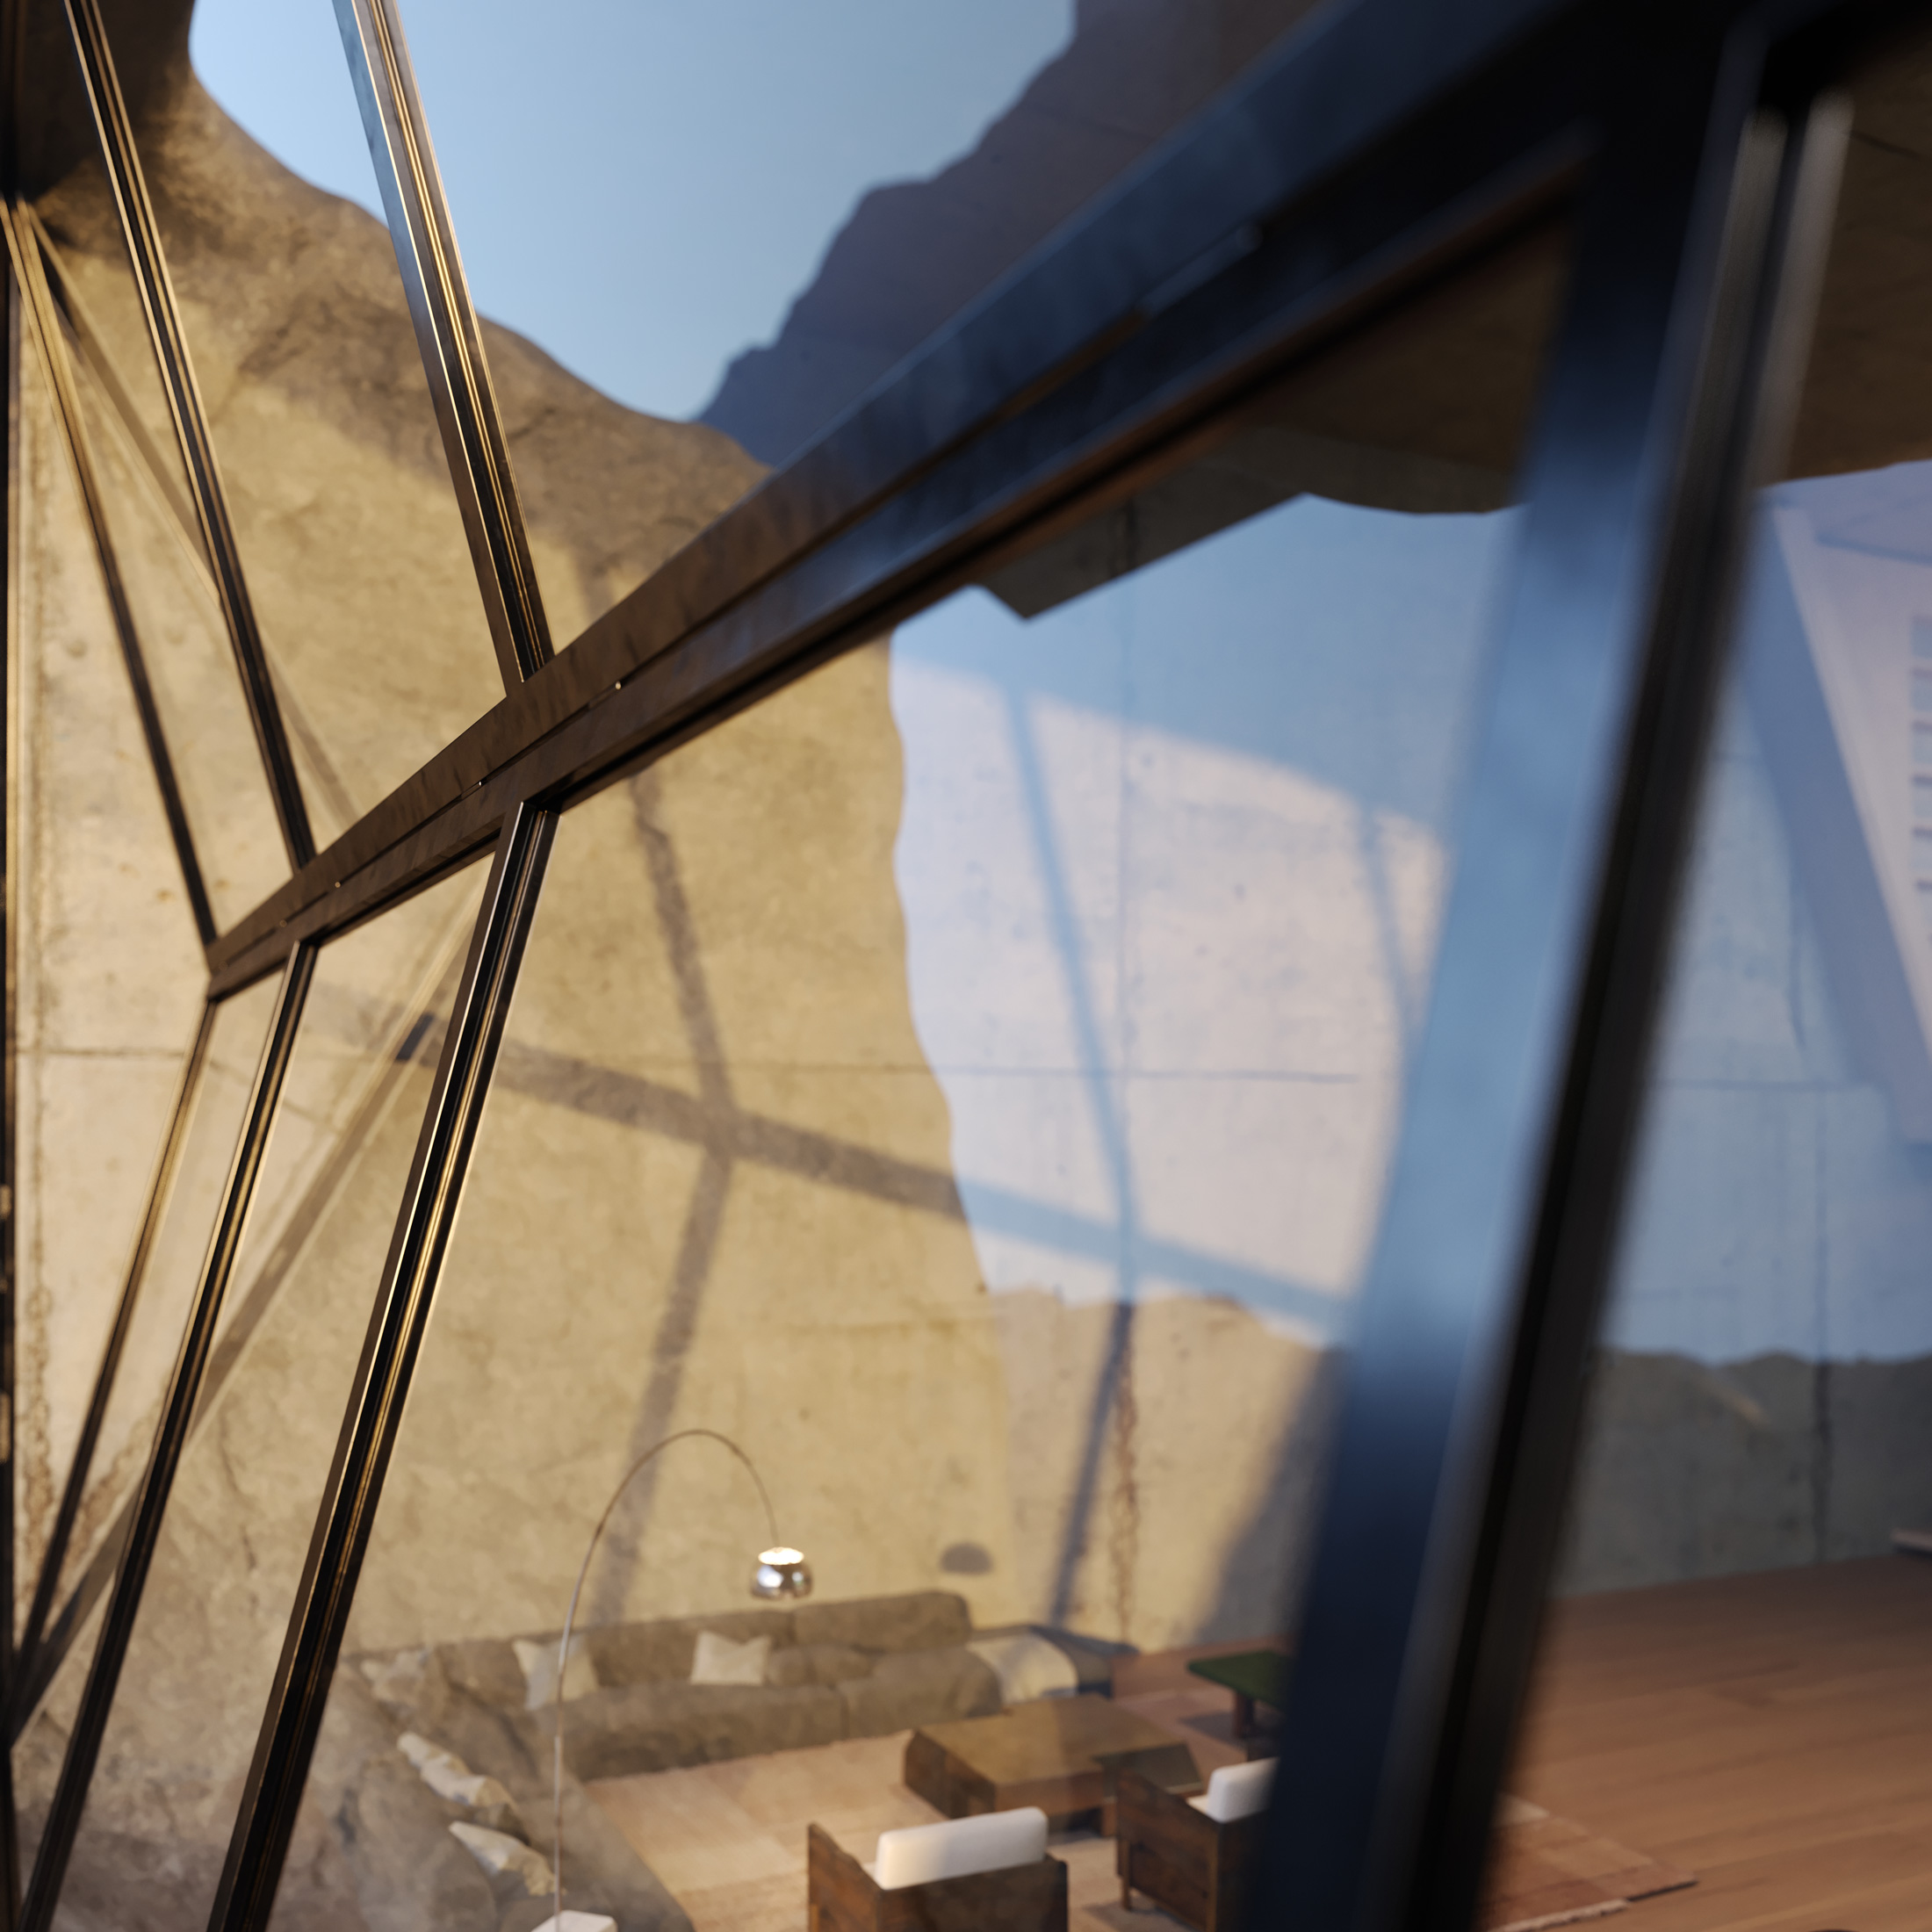 Detail of an Architectural Rendering for the Paramo film made by Moso Lab